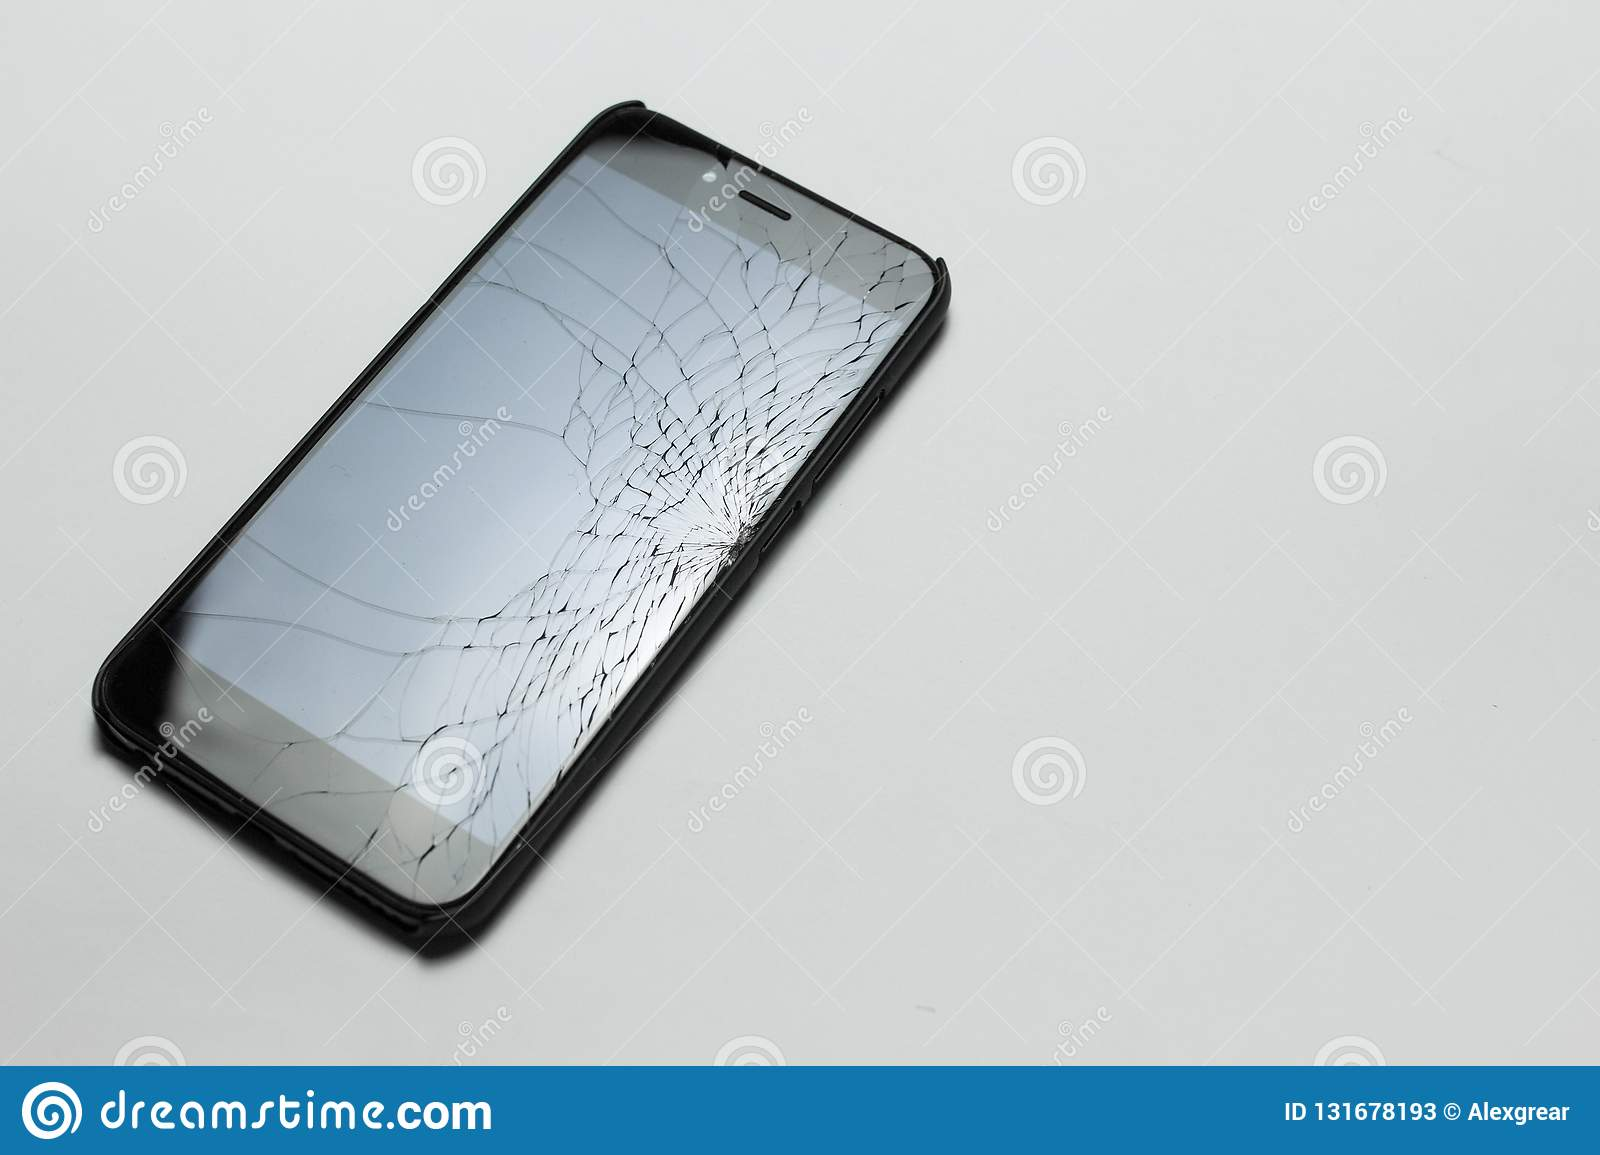 Mobile smartphone with broken screen on white background